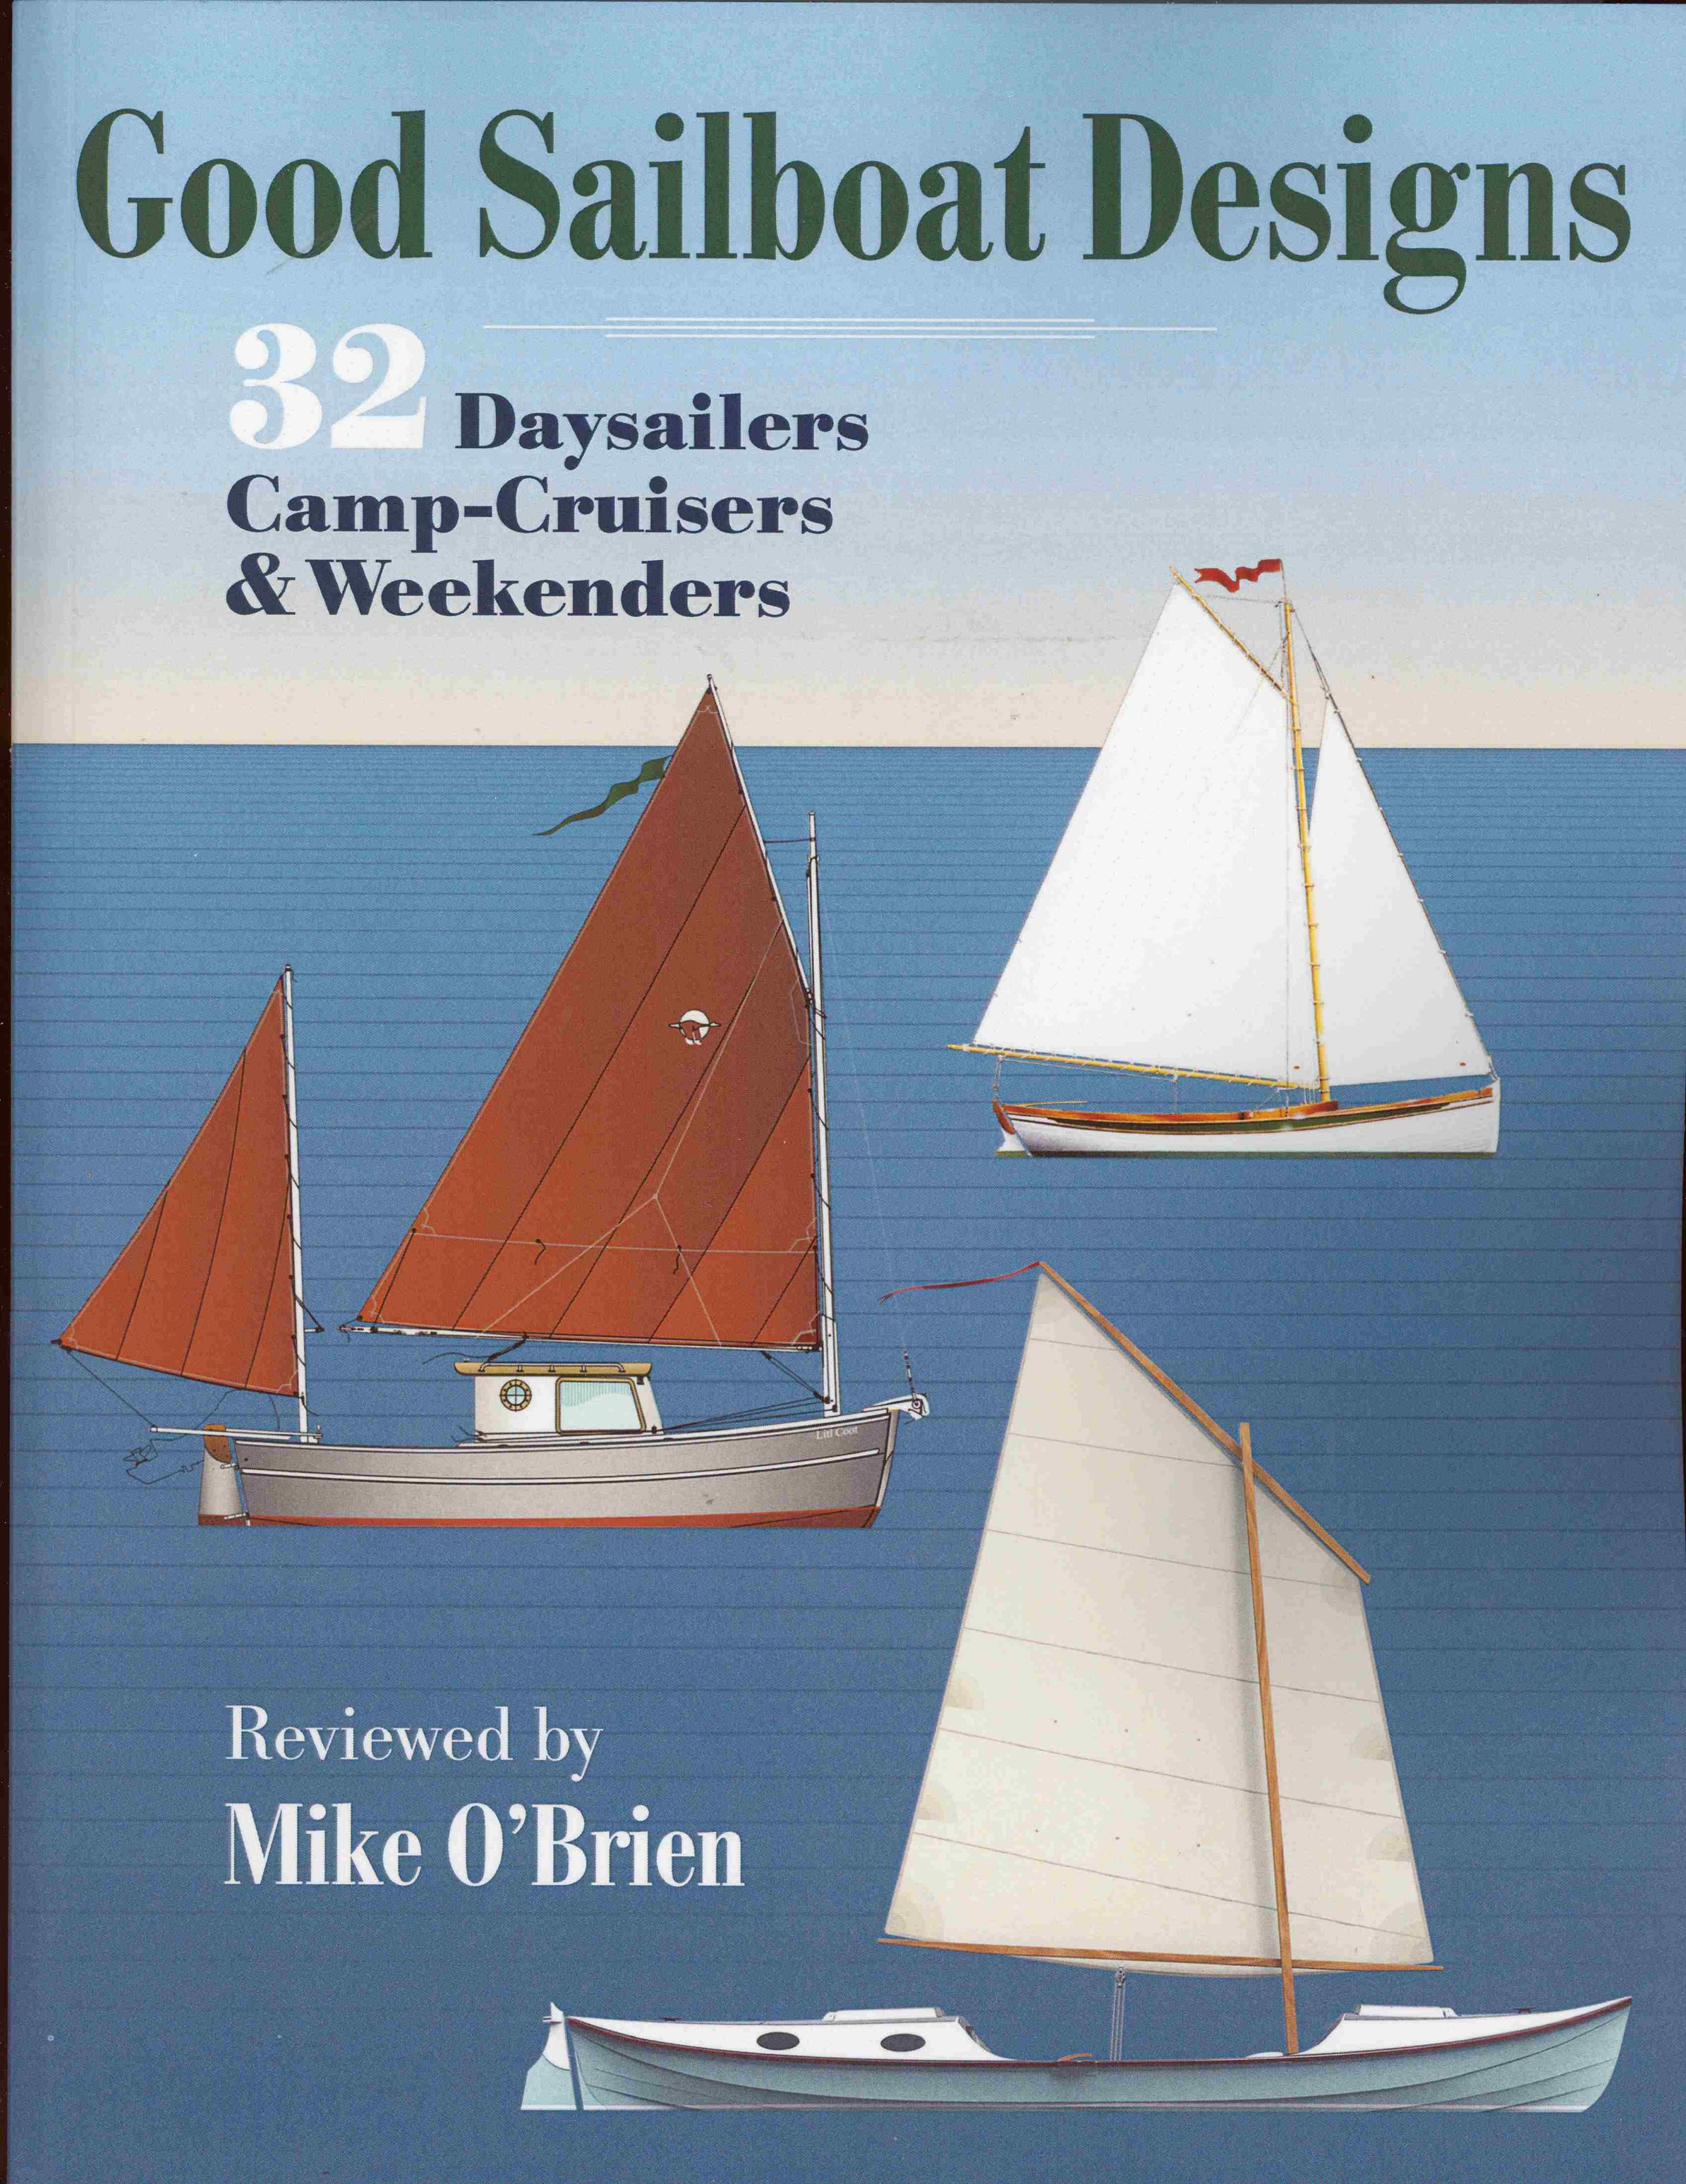 Good Sailboat Design by Mike O'Brien